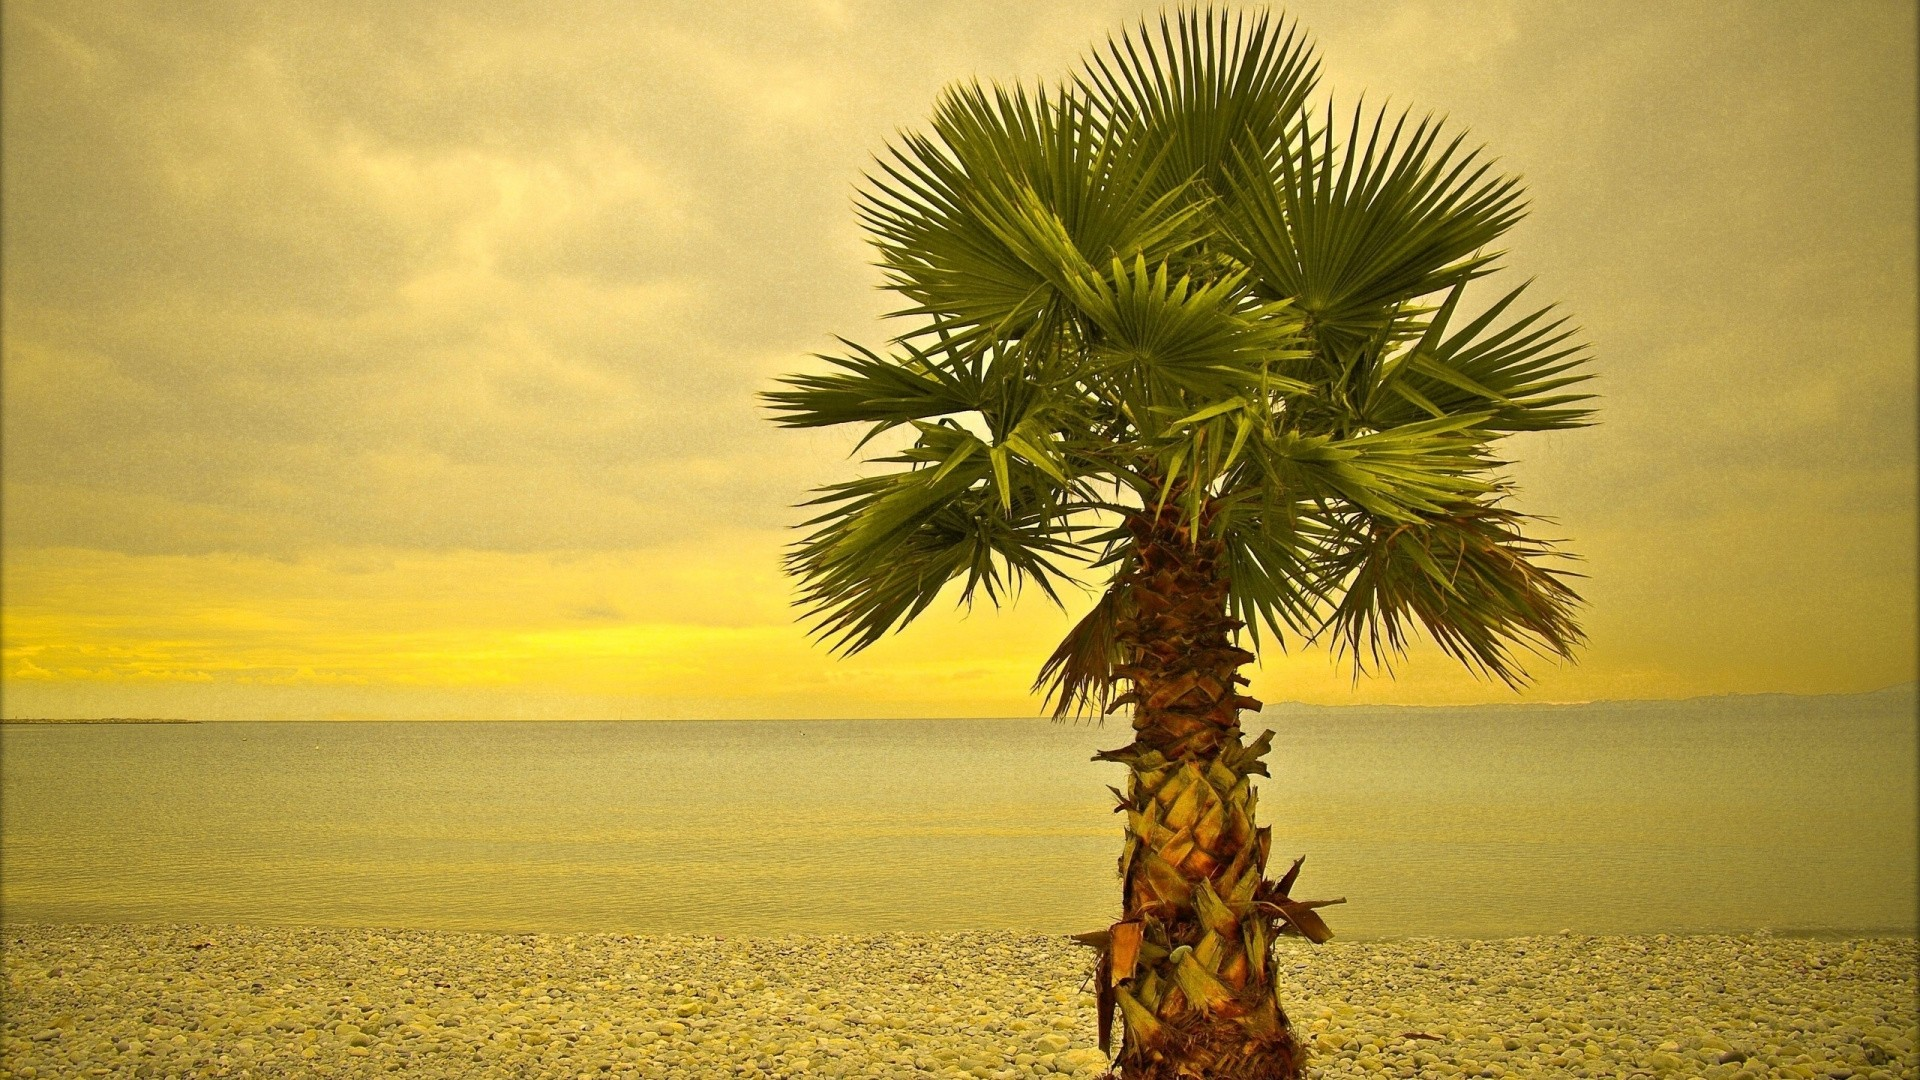 Palm Tree Background Wallpaper